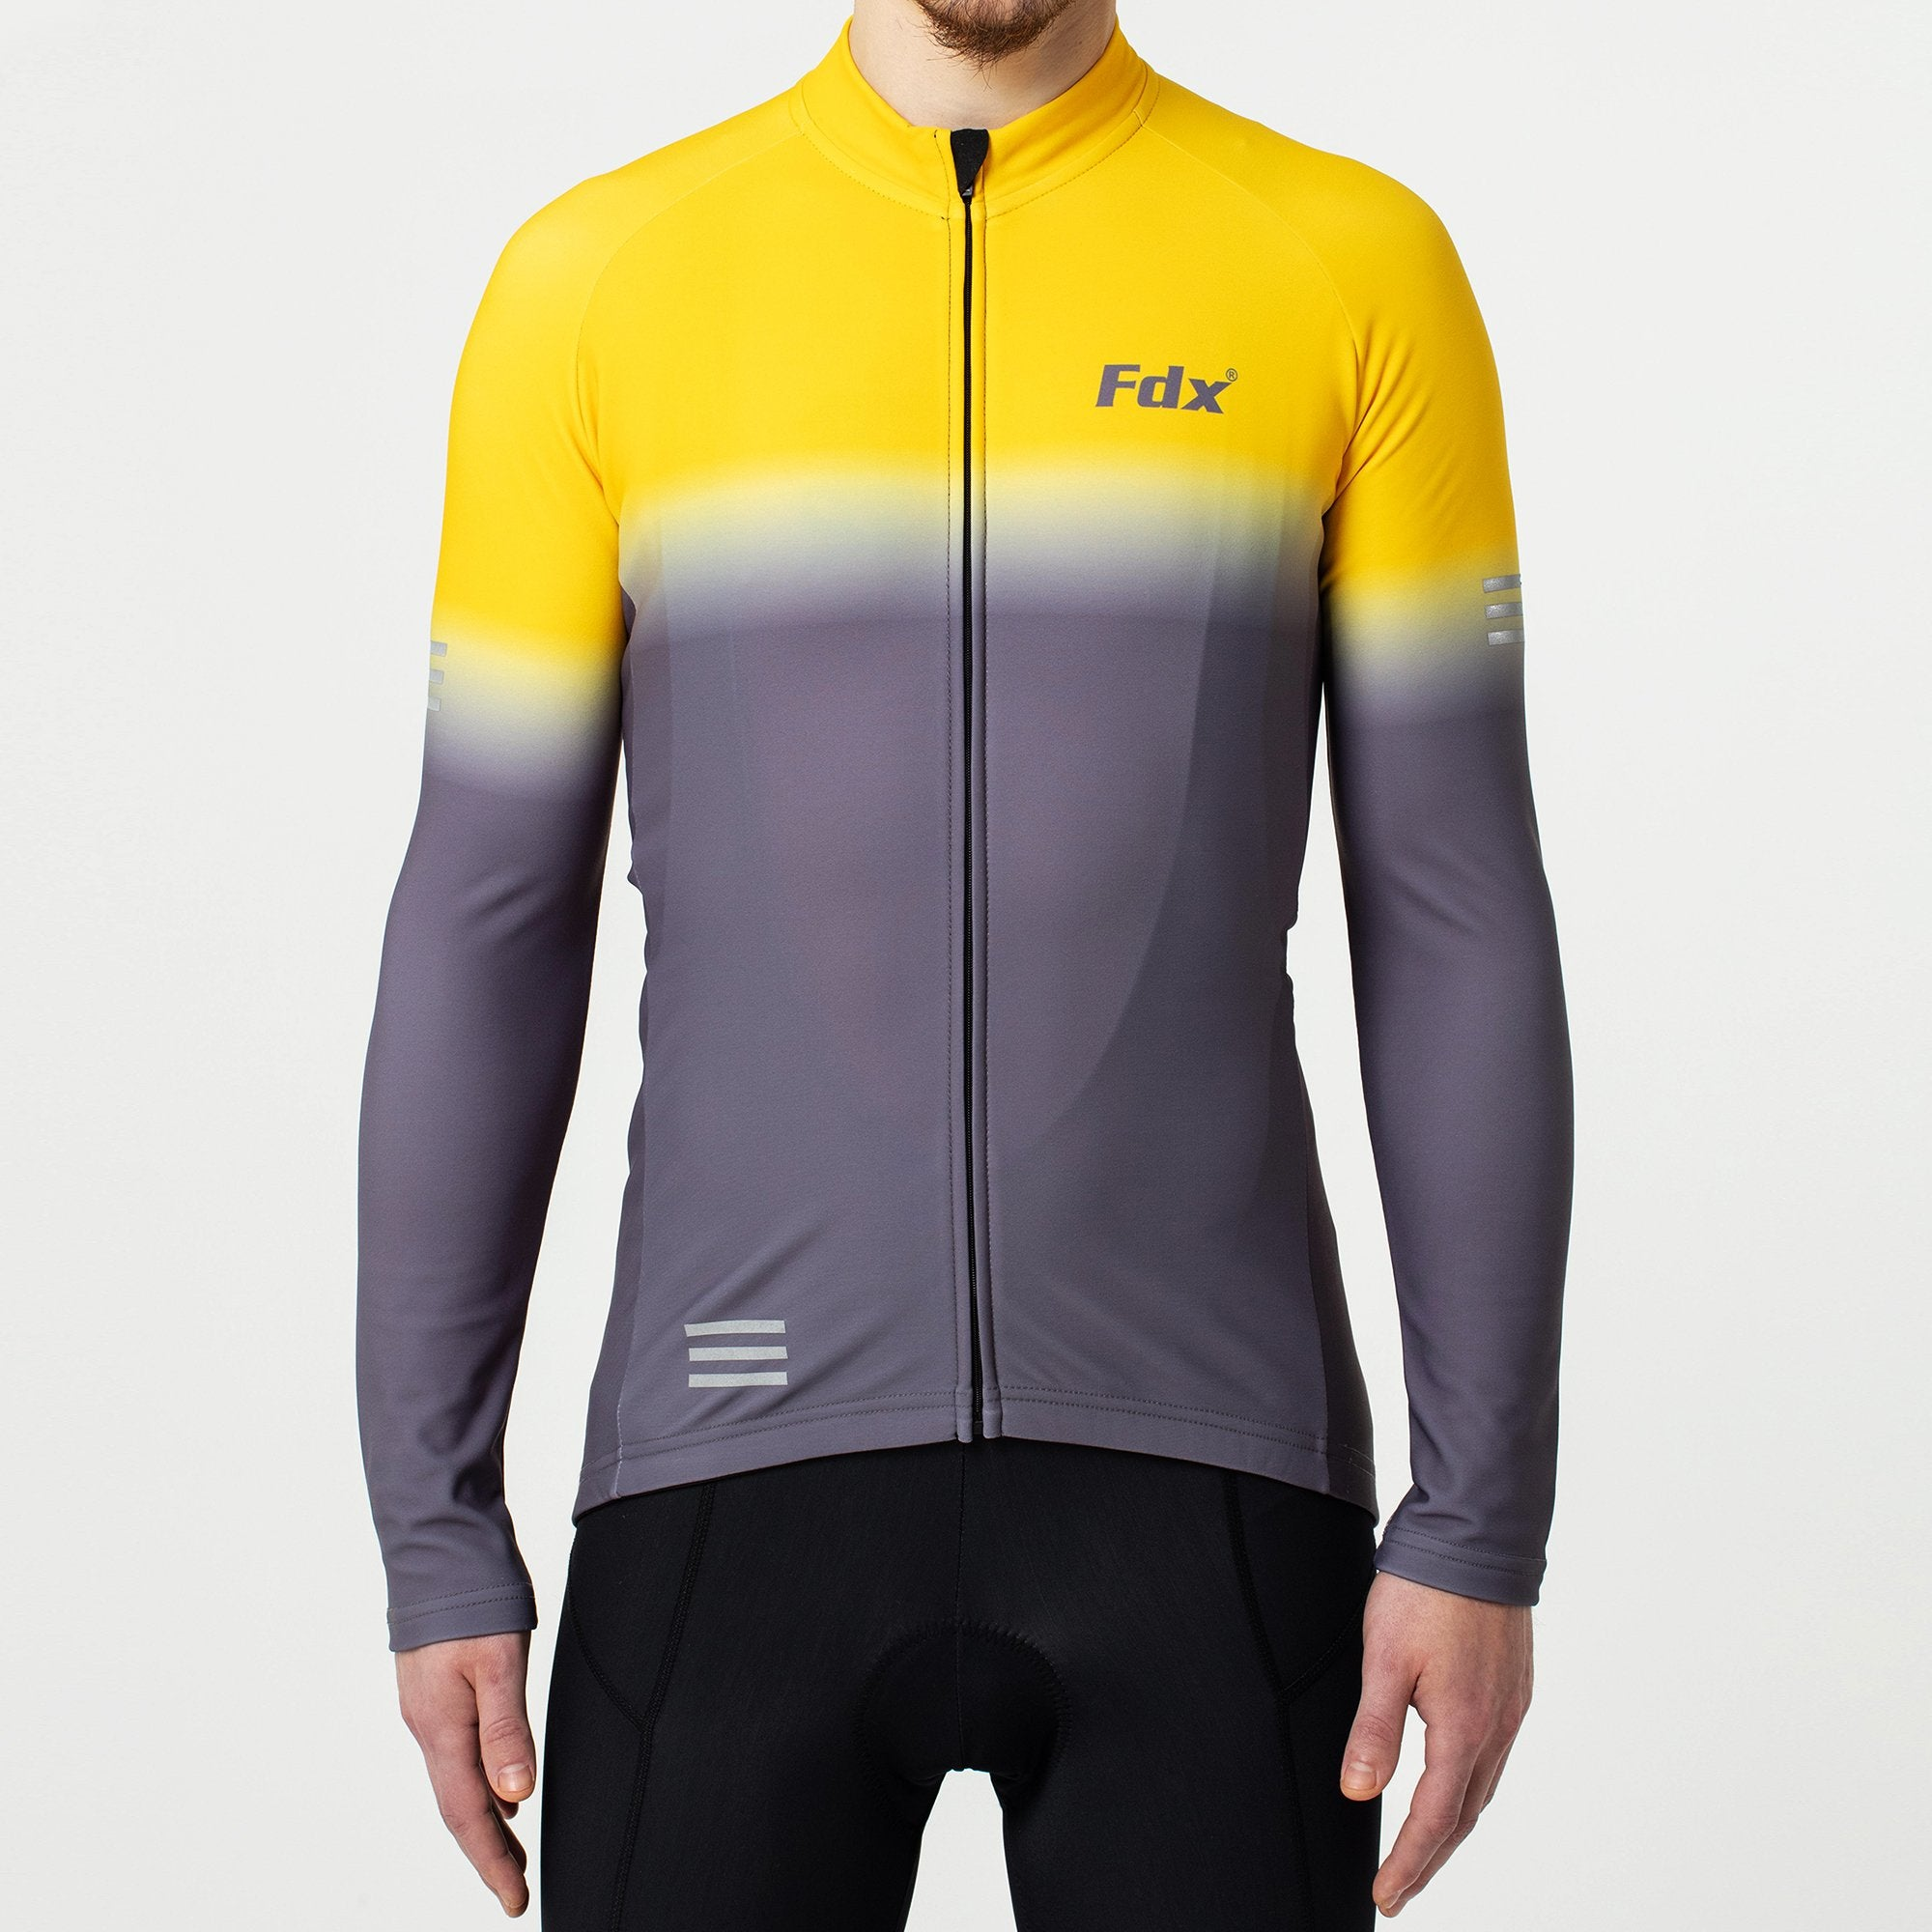 Fdx Duo Long Sleeves Men's Yellow & Grey Cycling Jersey